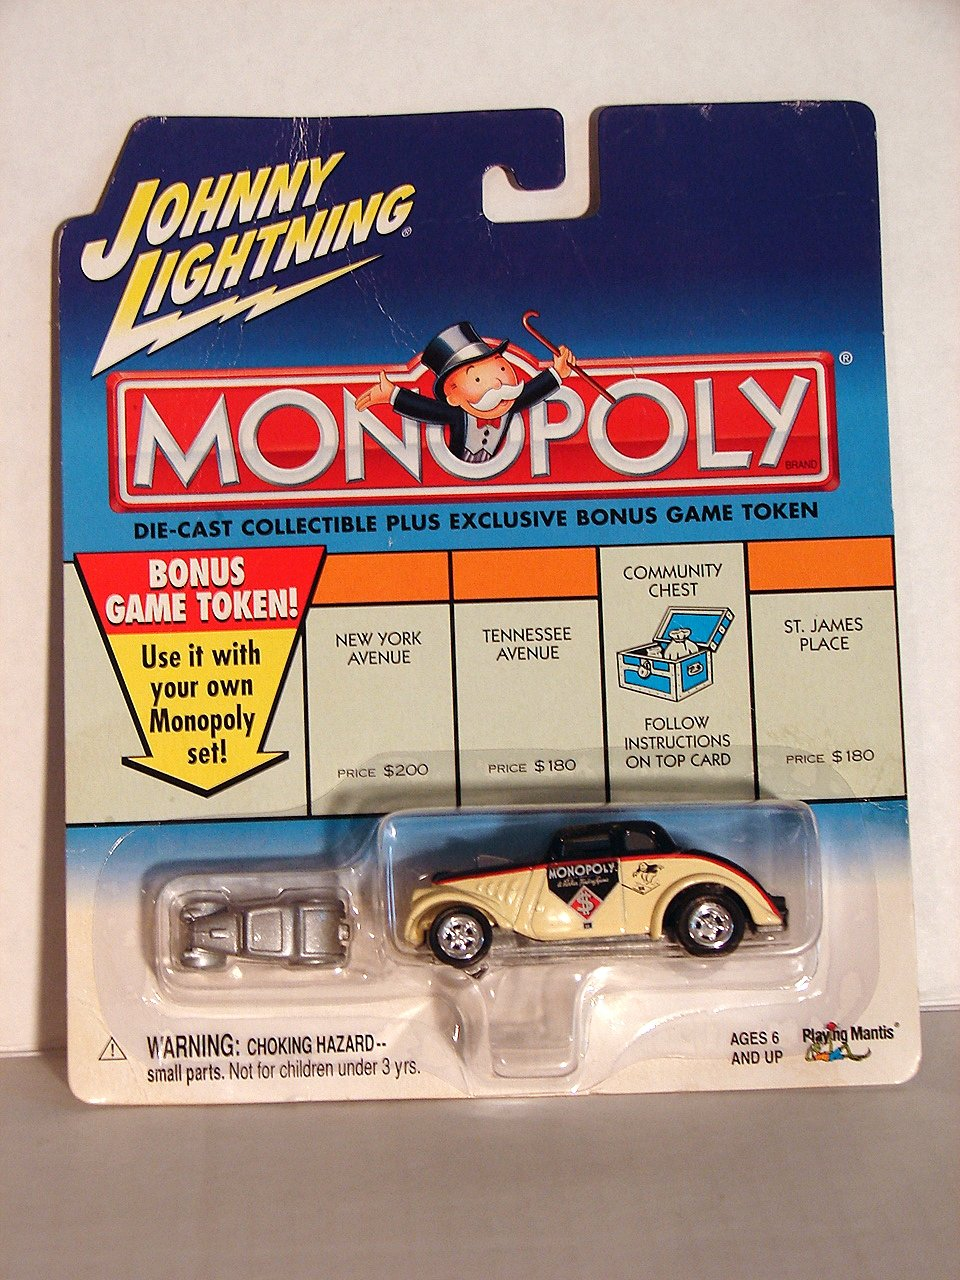 Amazon.com: Johnny Lightning Monopoly Collectible CAR: Toys & Games